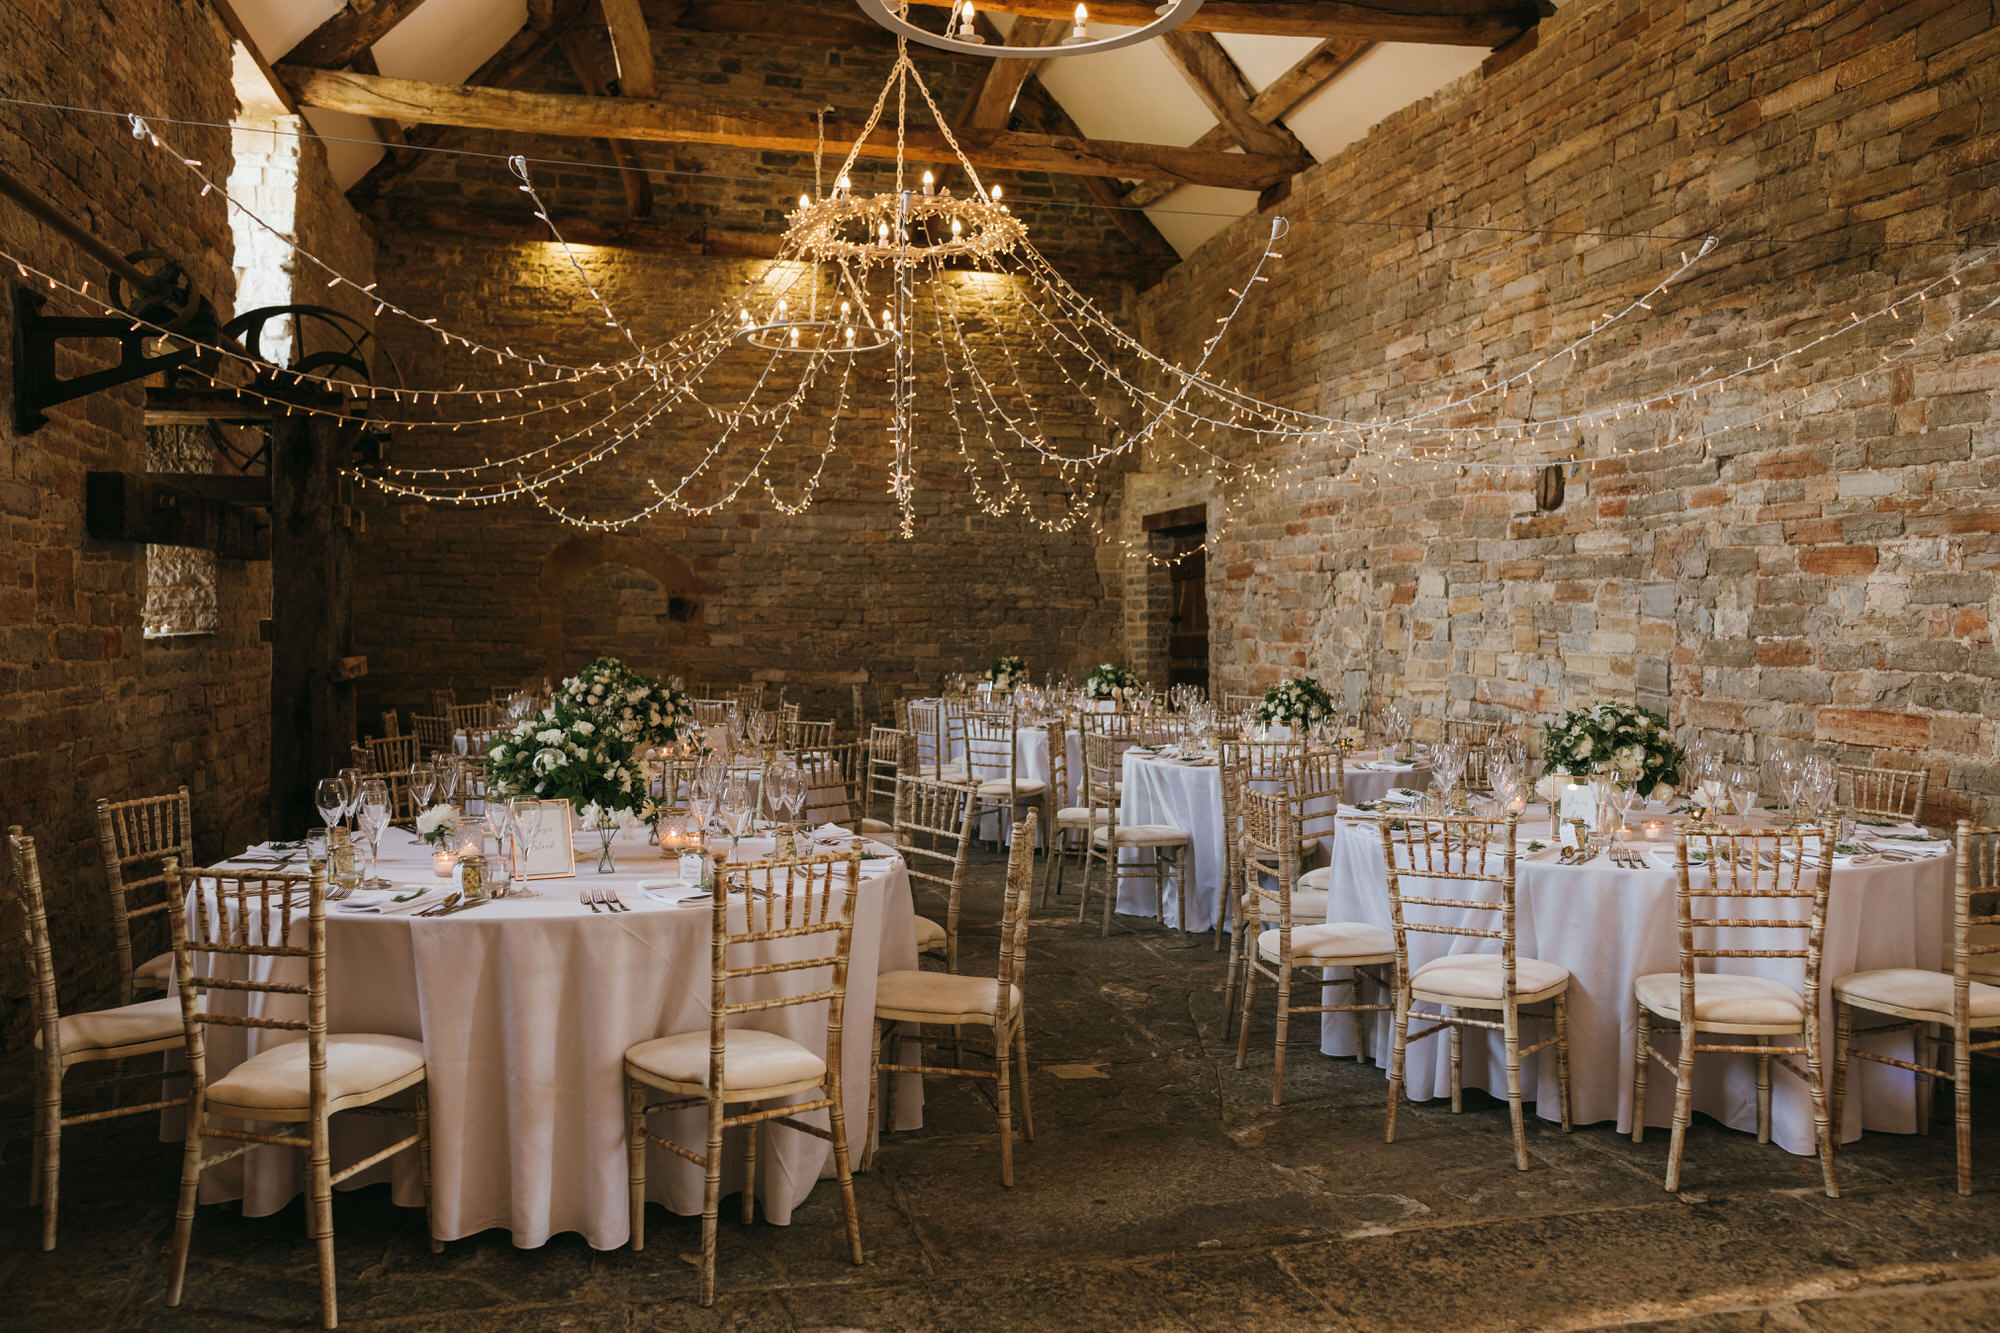 Almonry Barn wedding venue inside